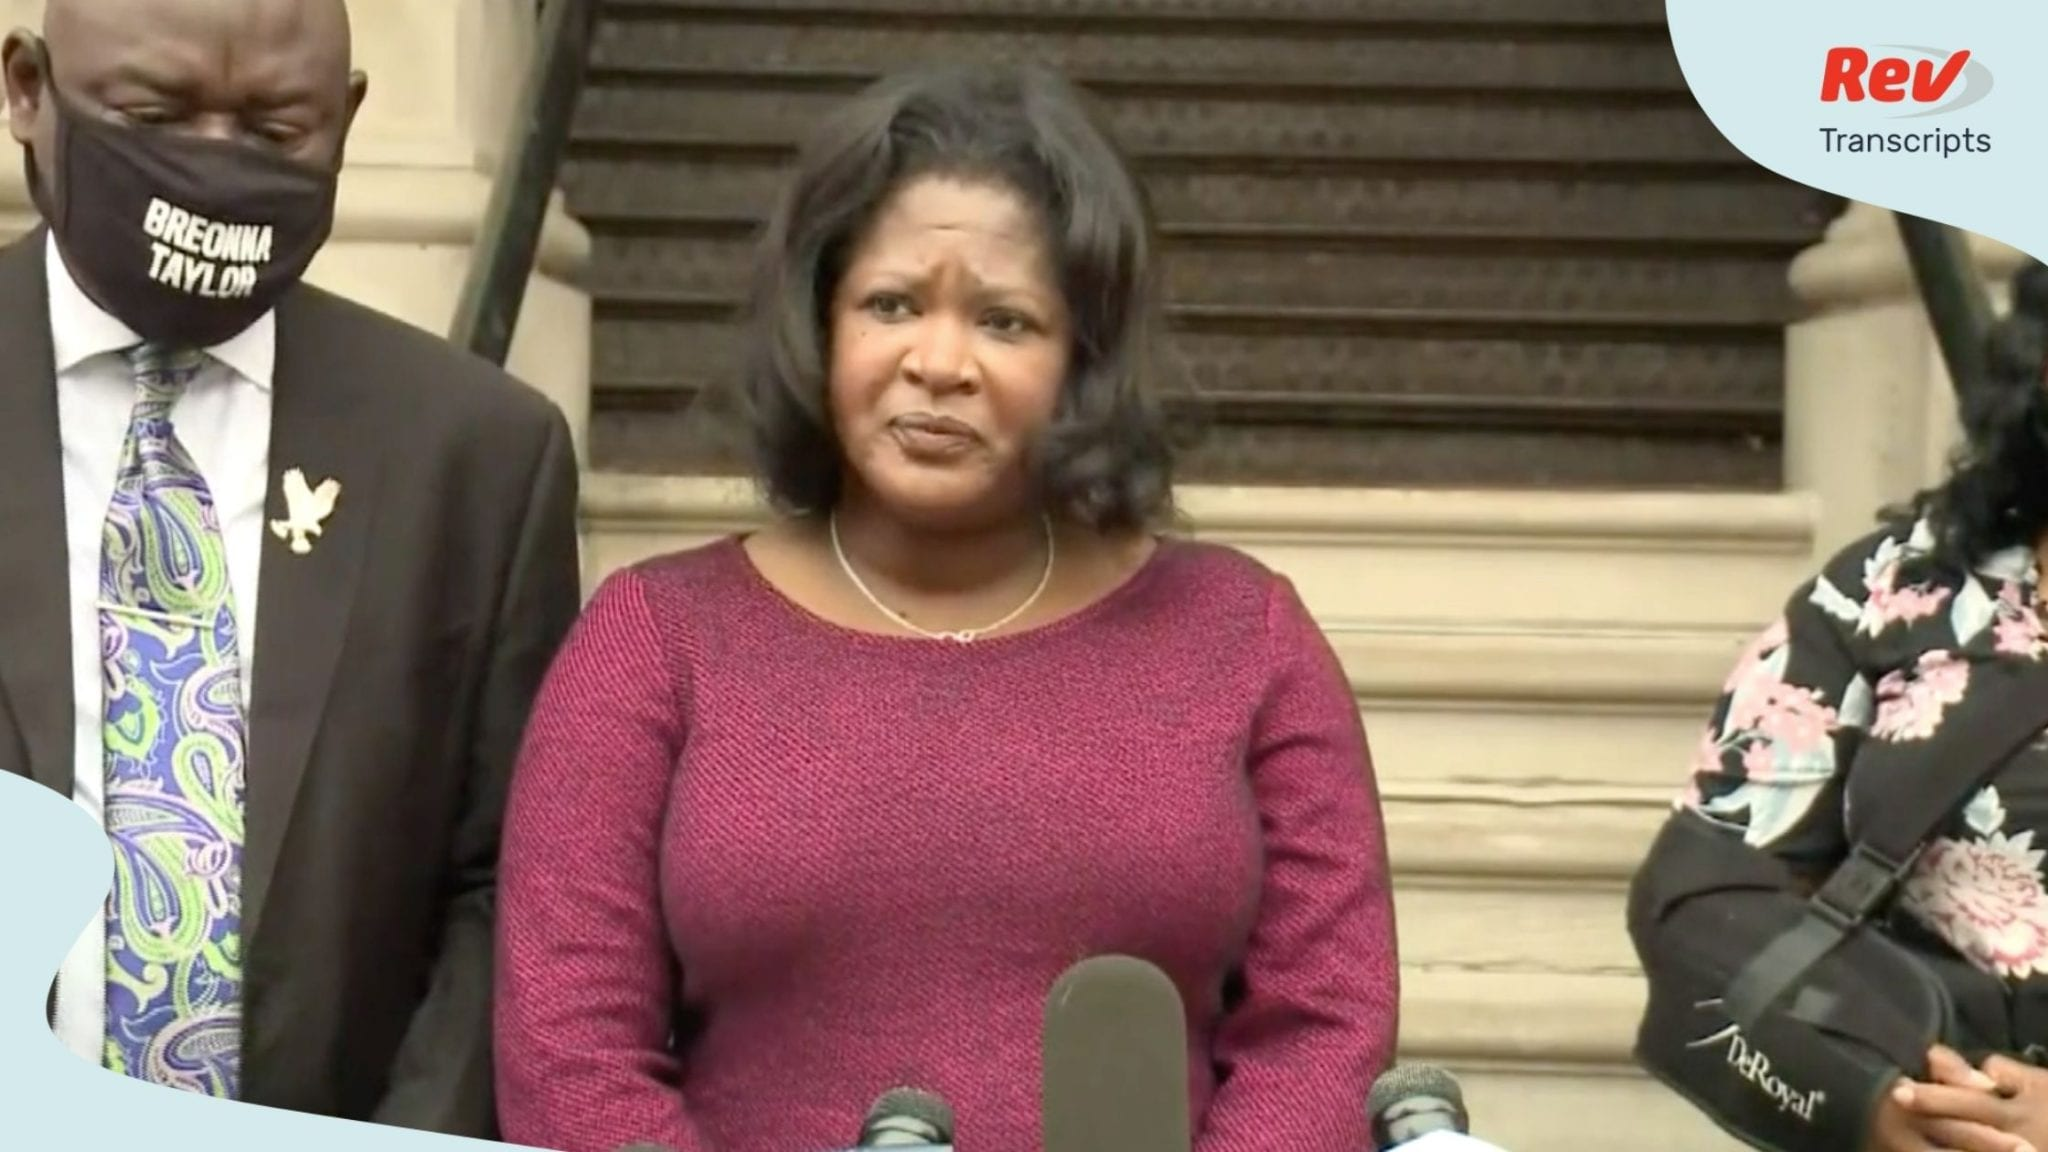 Breonna Taylor Case Update Transcript August 13: Family Attorneys Hold Press Conference